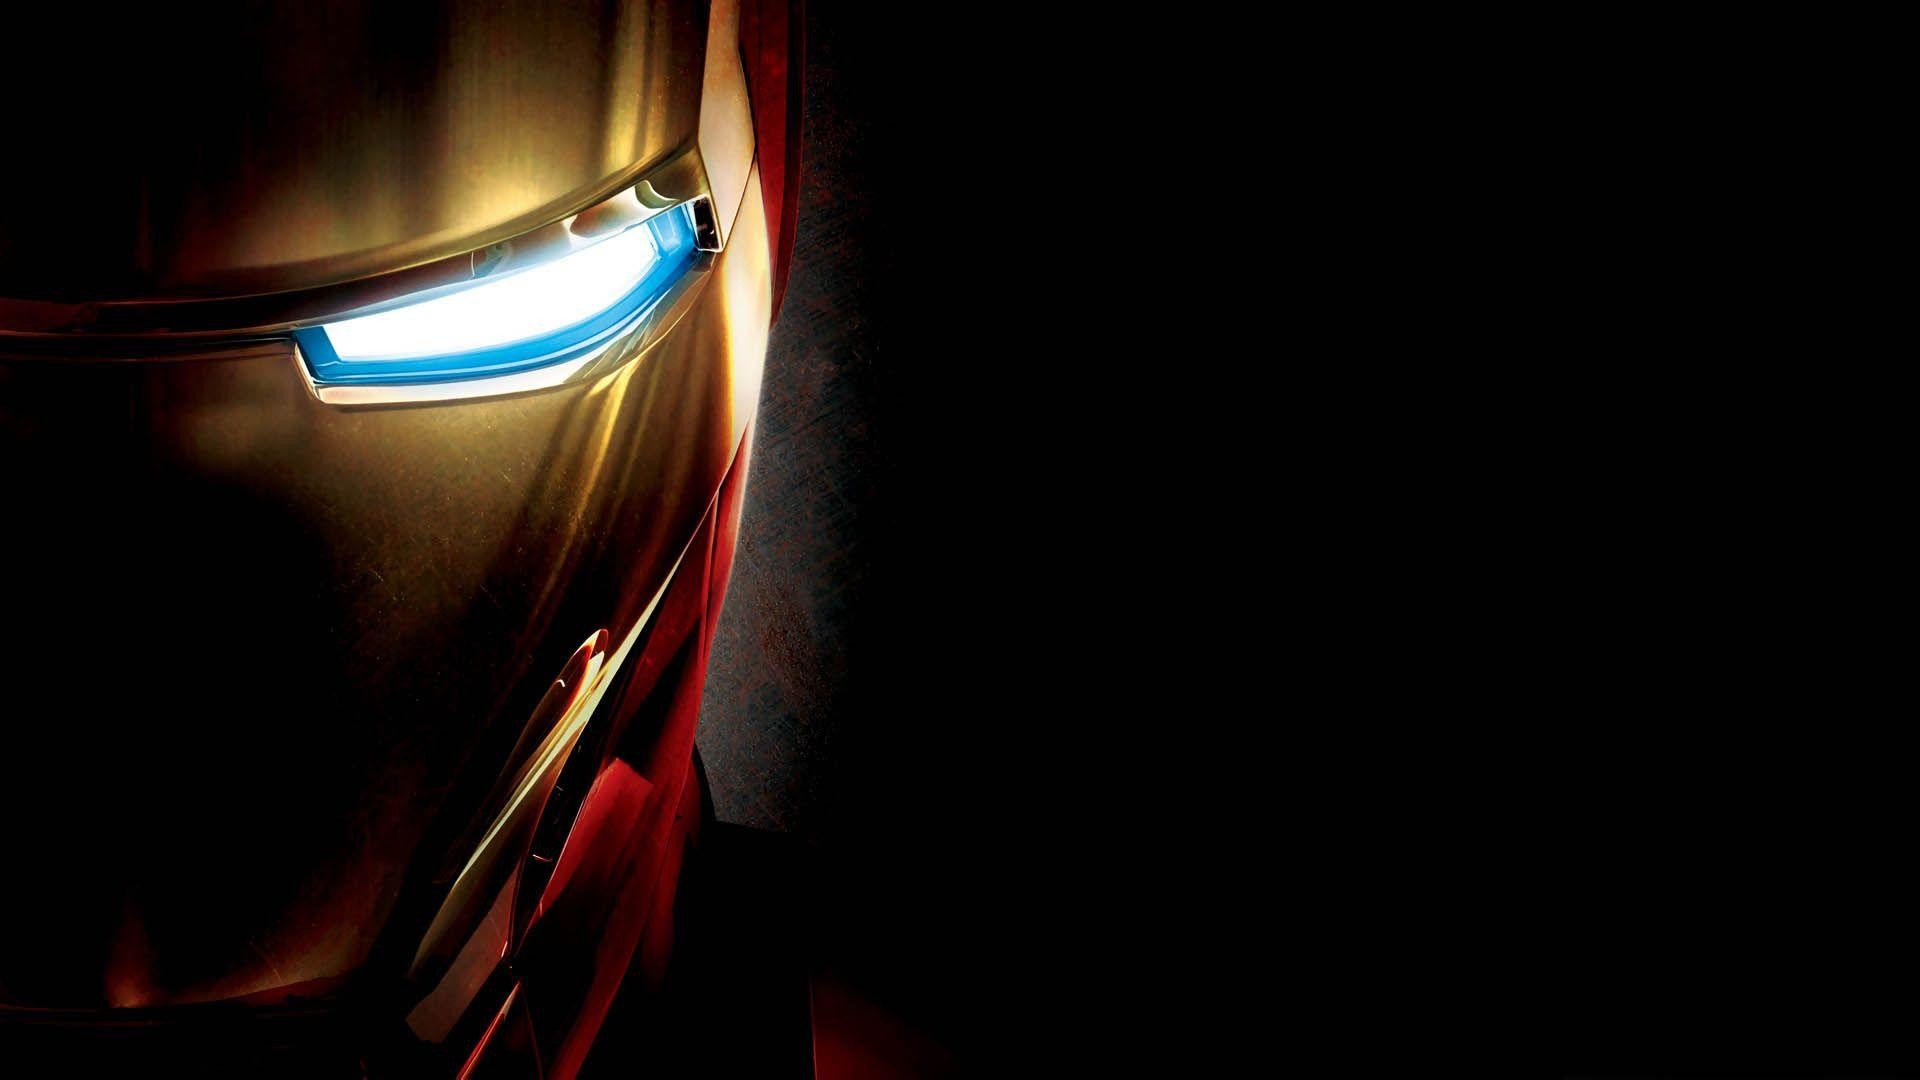 Iron Man Wallpaper 1920x1080 70 Images